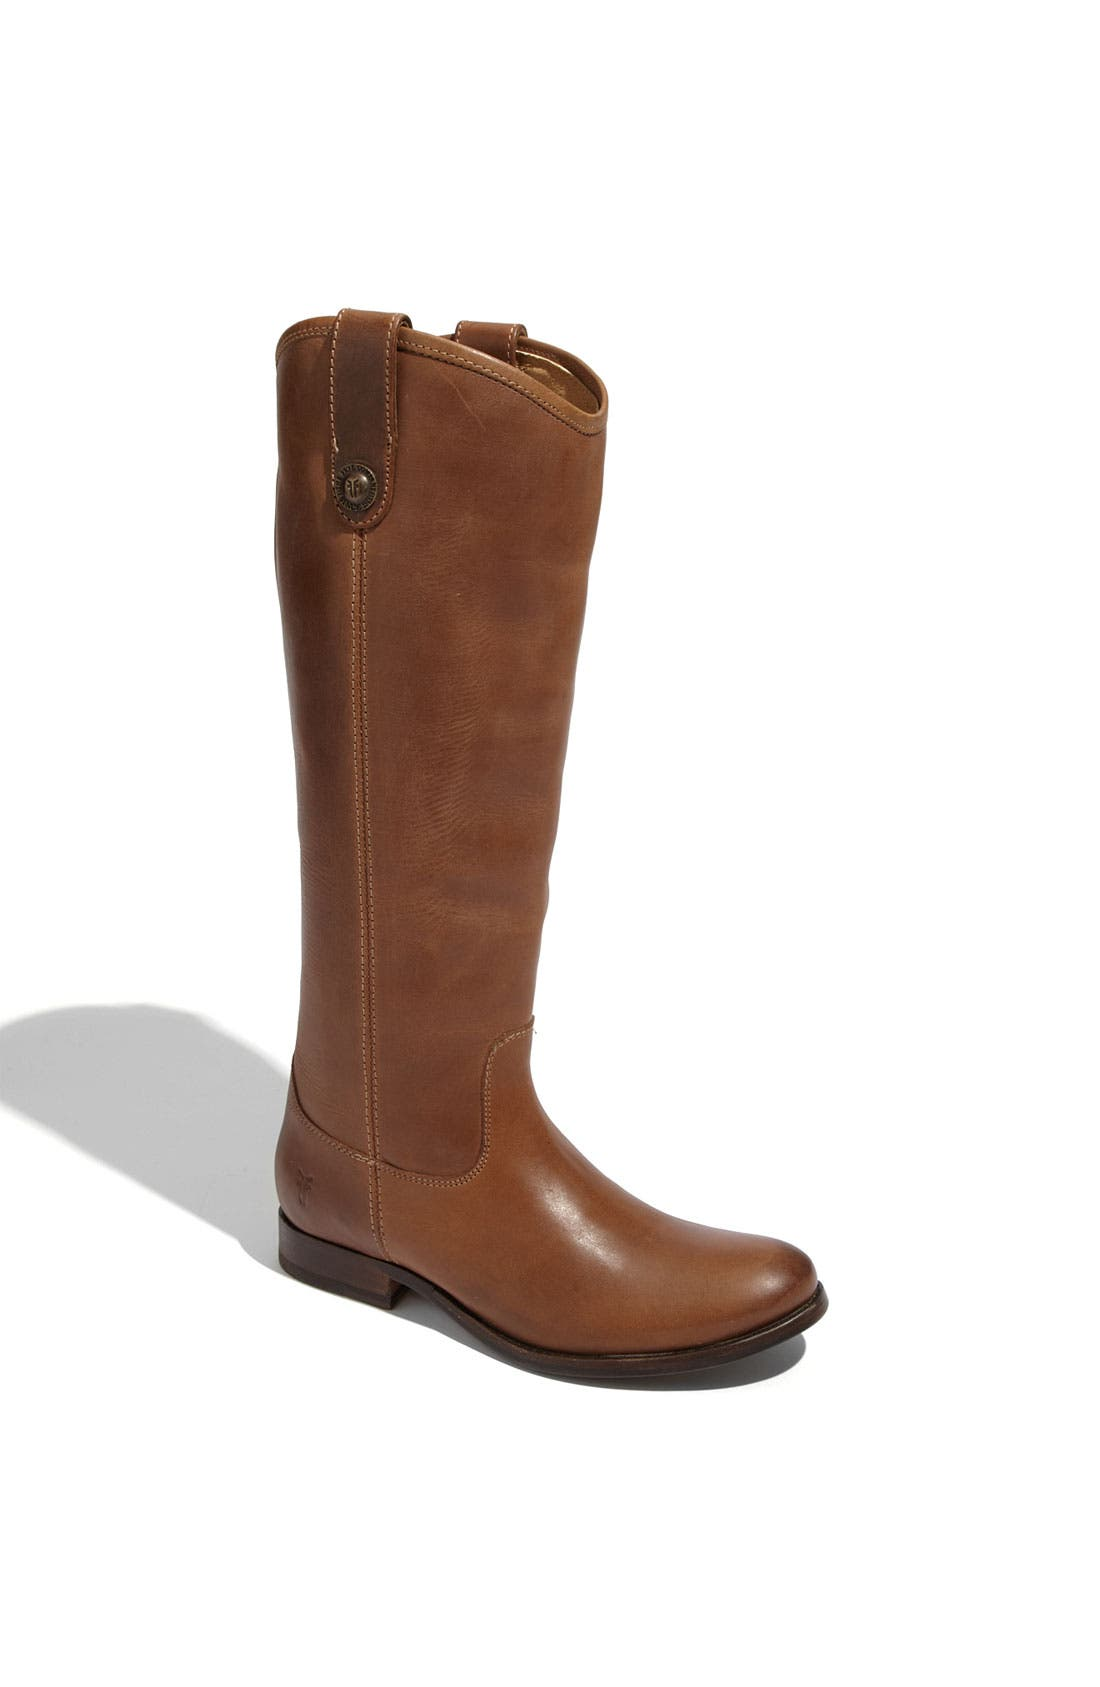 'Melissa Button' Leather Riding Boot,                             Main thumbnail 25, color,